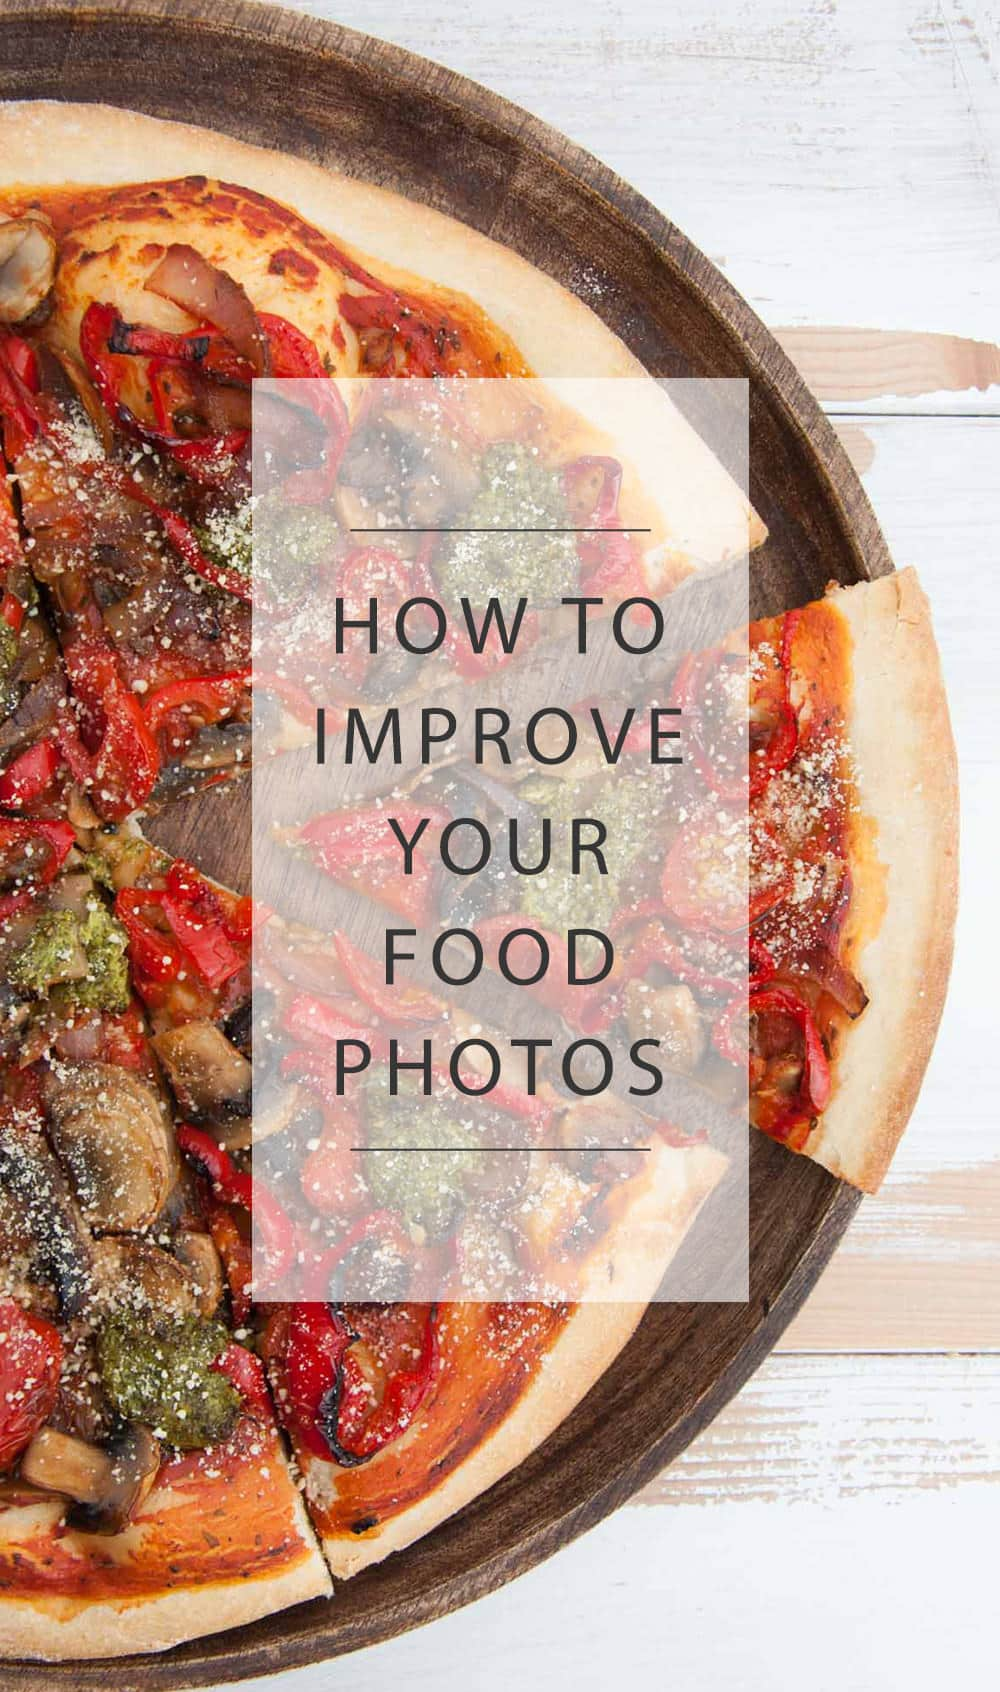 How to improve your Food Photography in 5 Simple Steps | ElephantasticVegan.com #foodphotography #photography #blogging